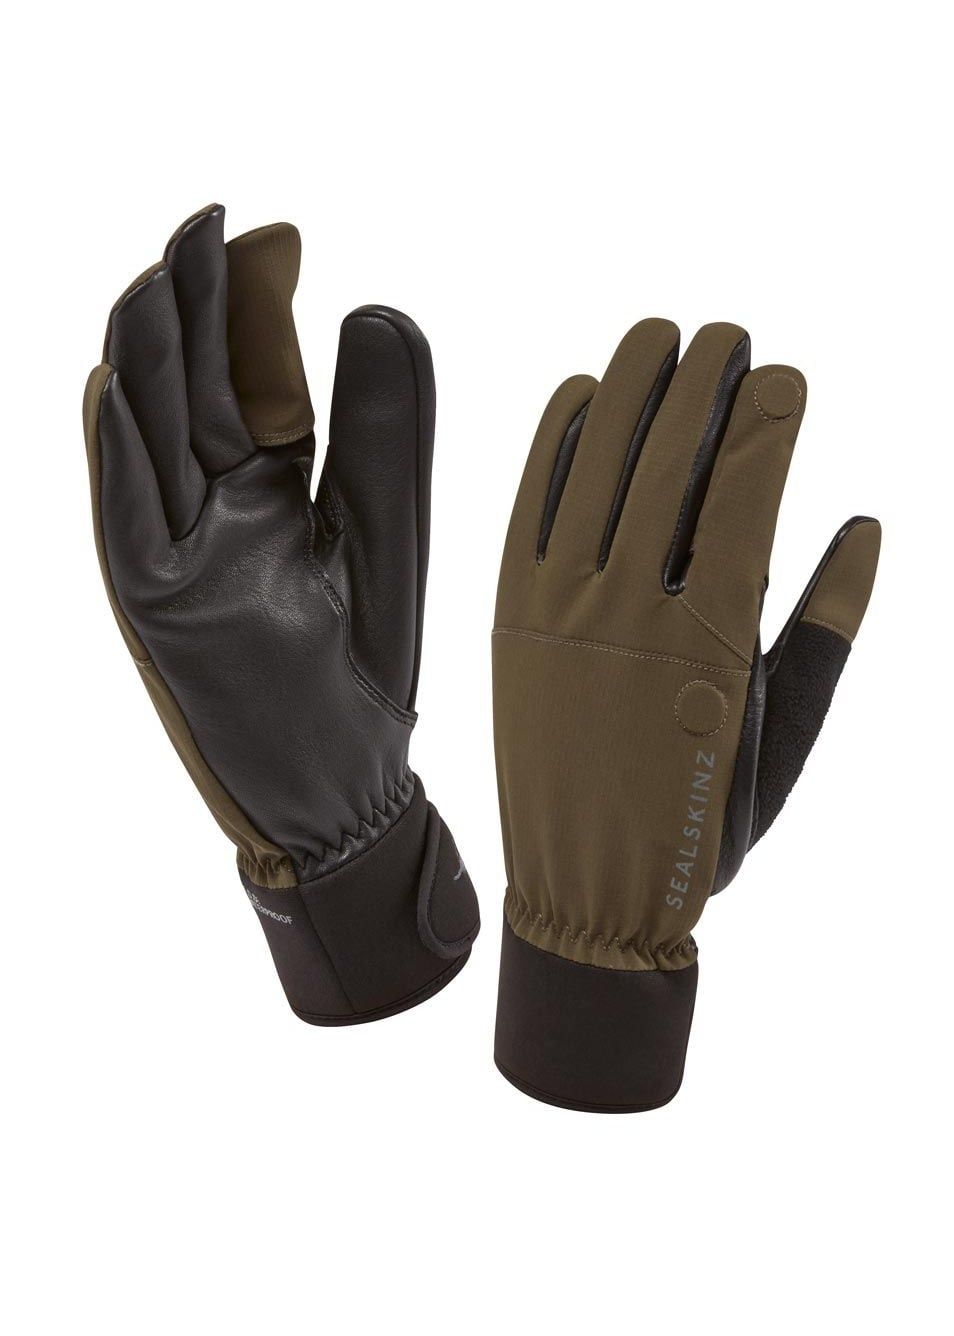 SealSkinz Shooting Glove  Large Image